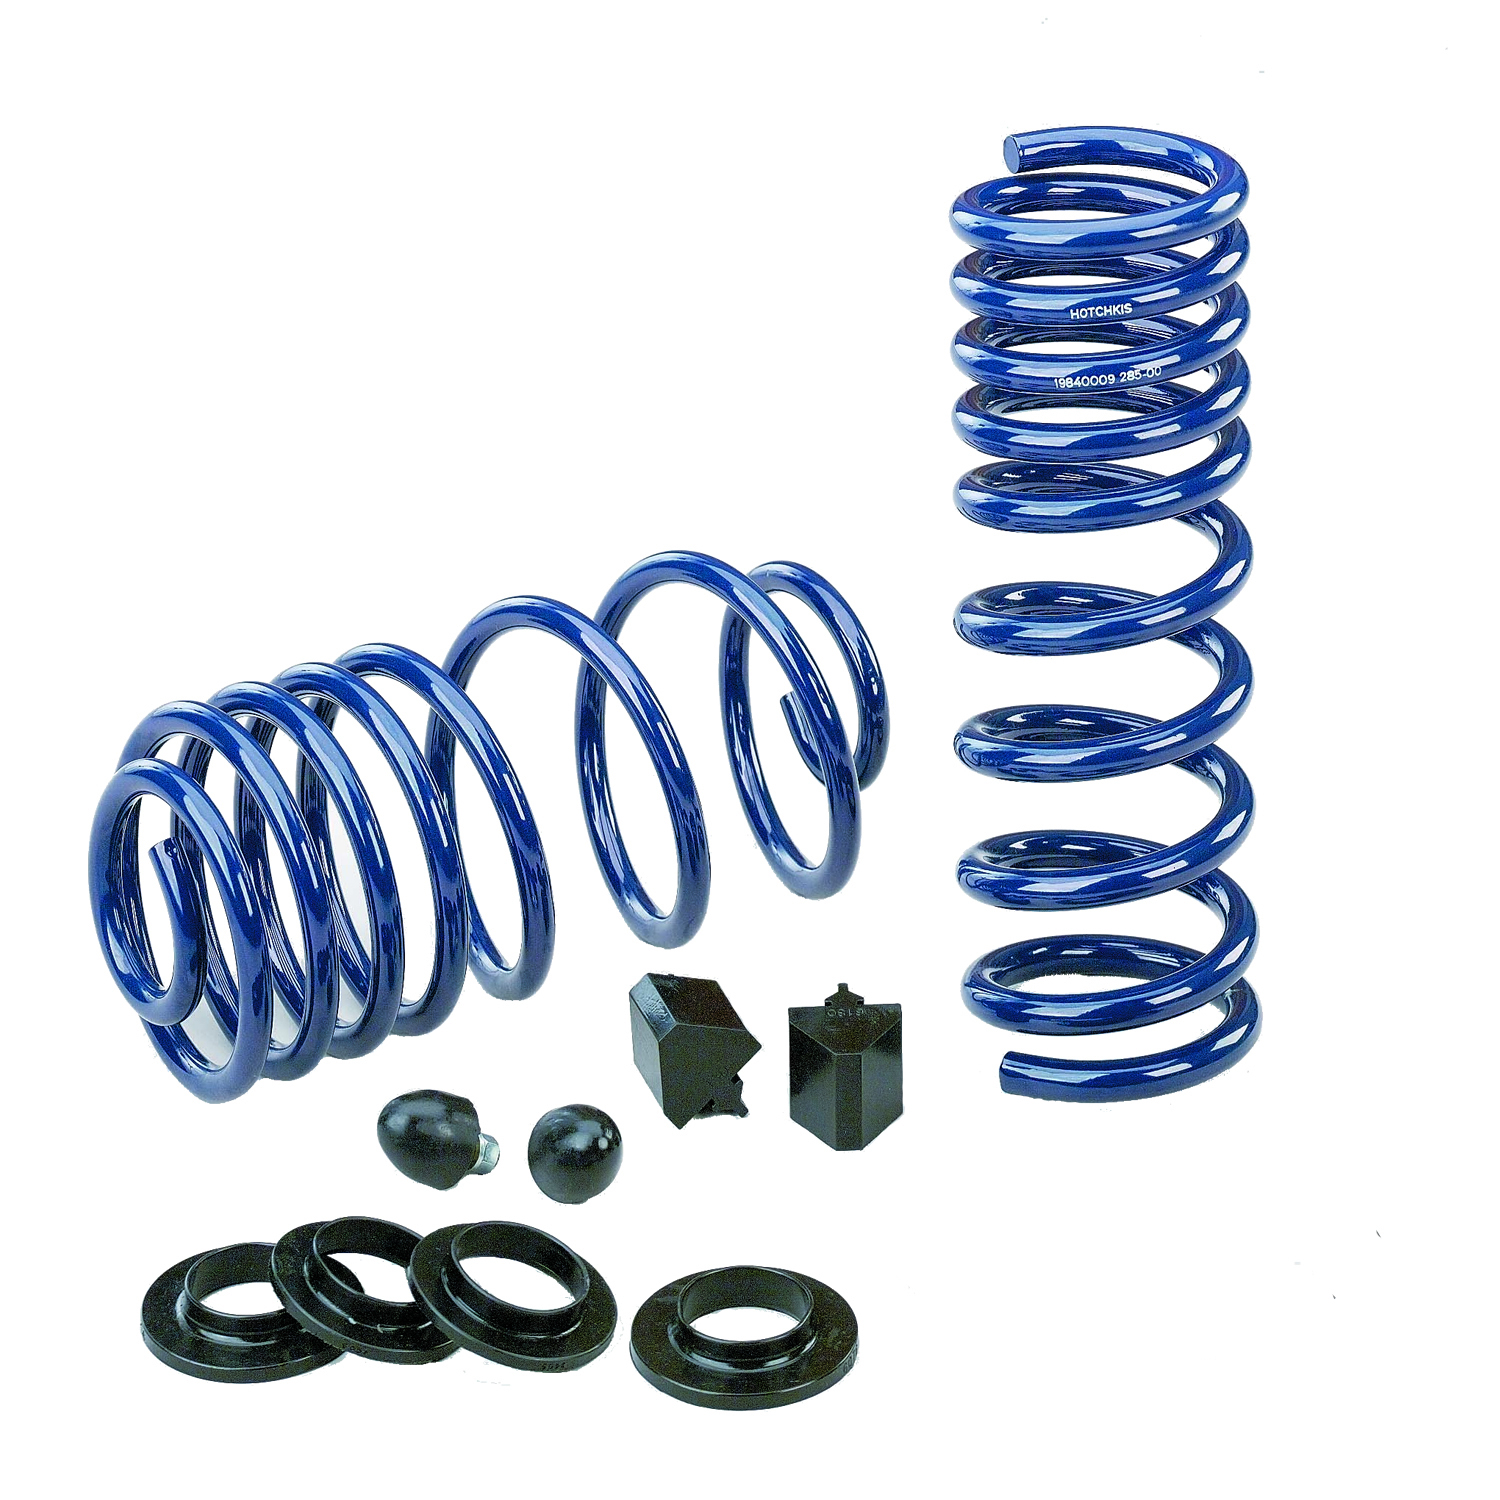 1994-1996 Impala SS Sport Coil Springs from Hotchkis Sport Suspension